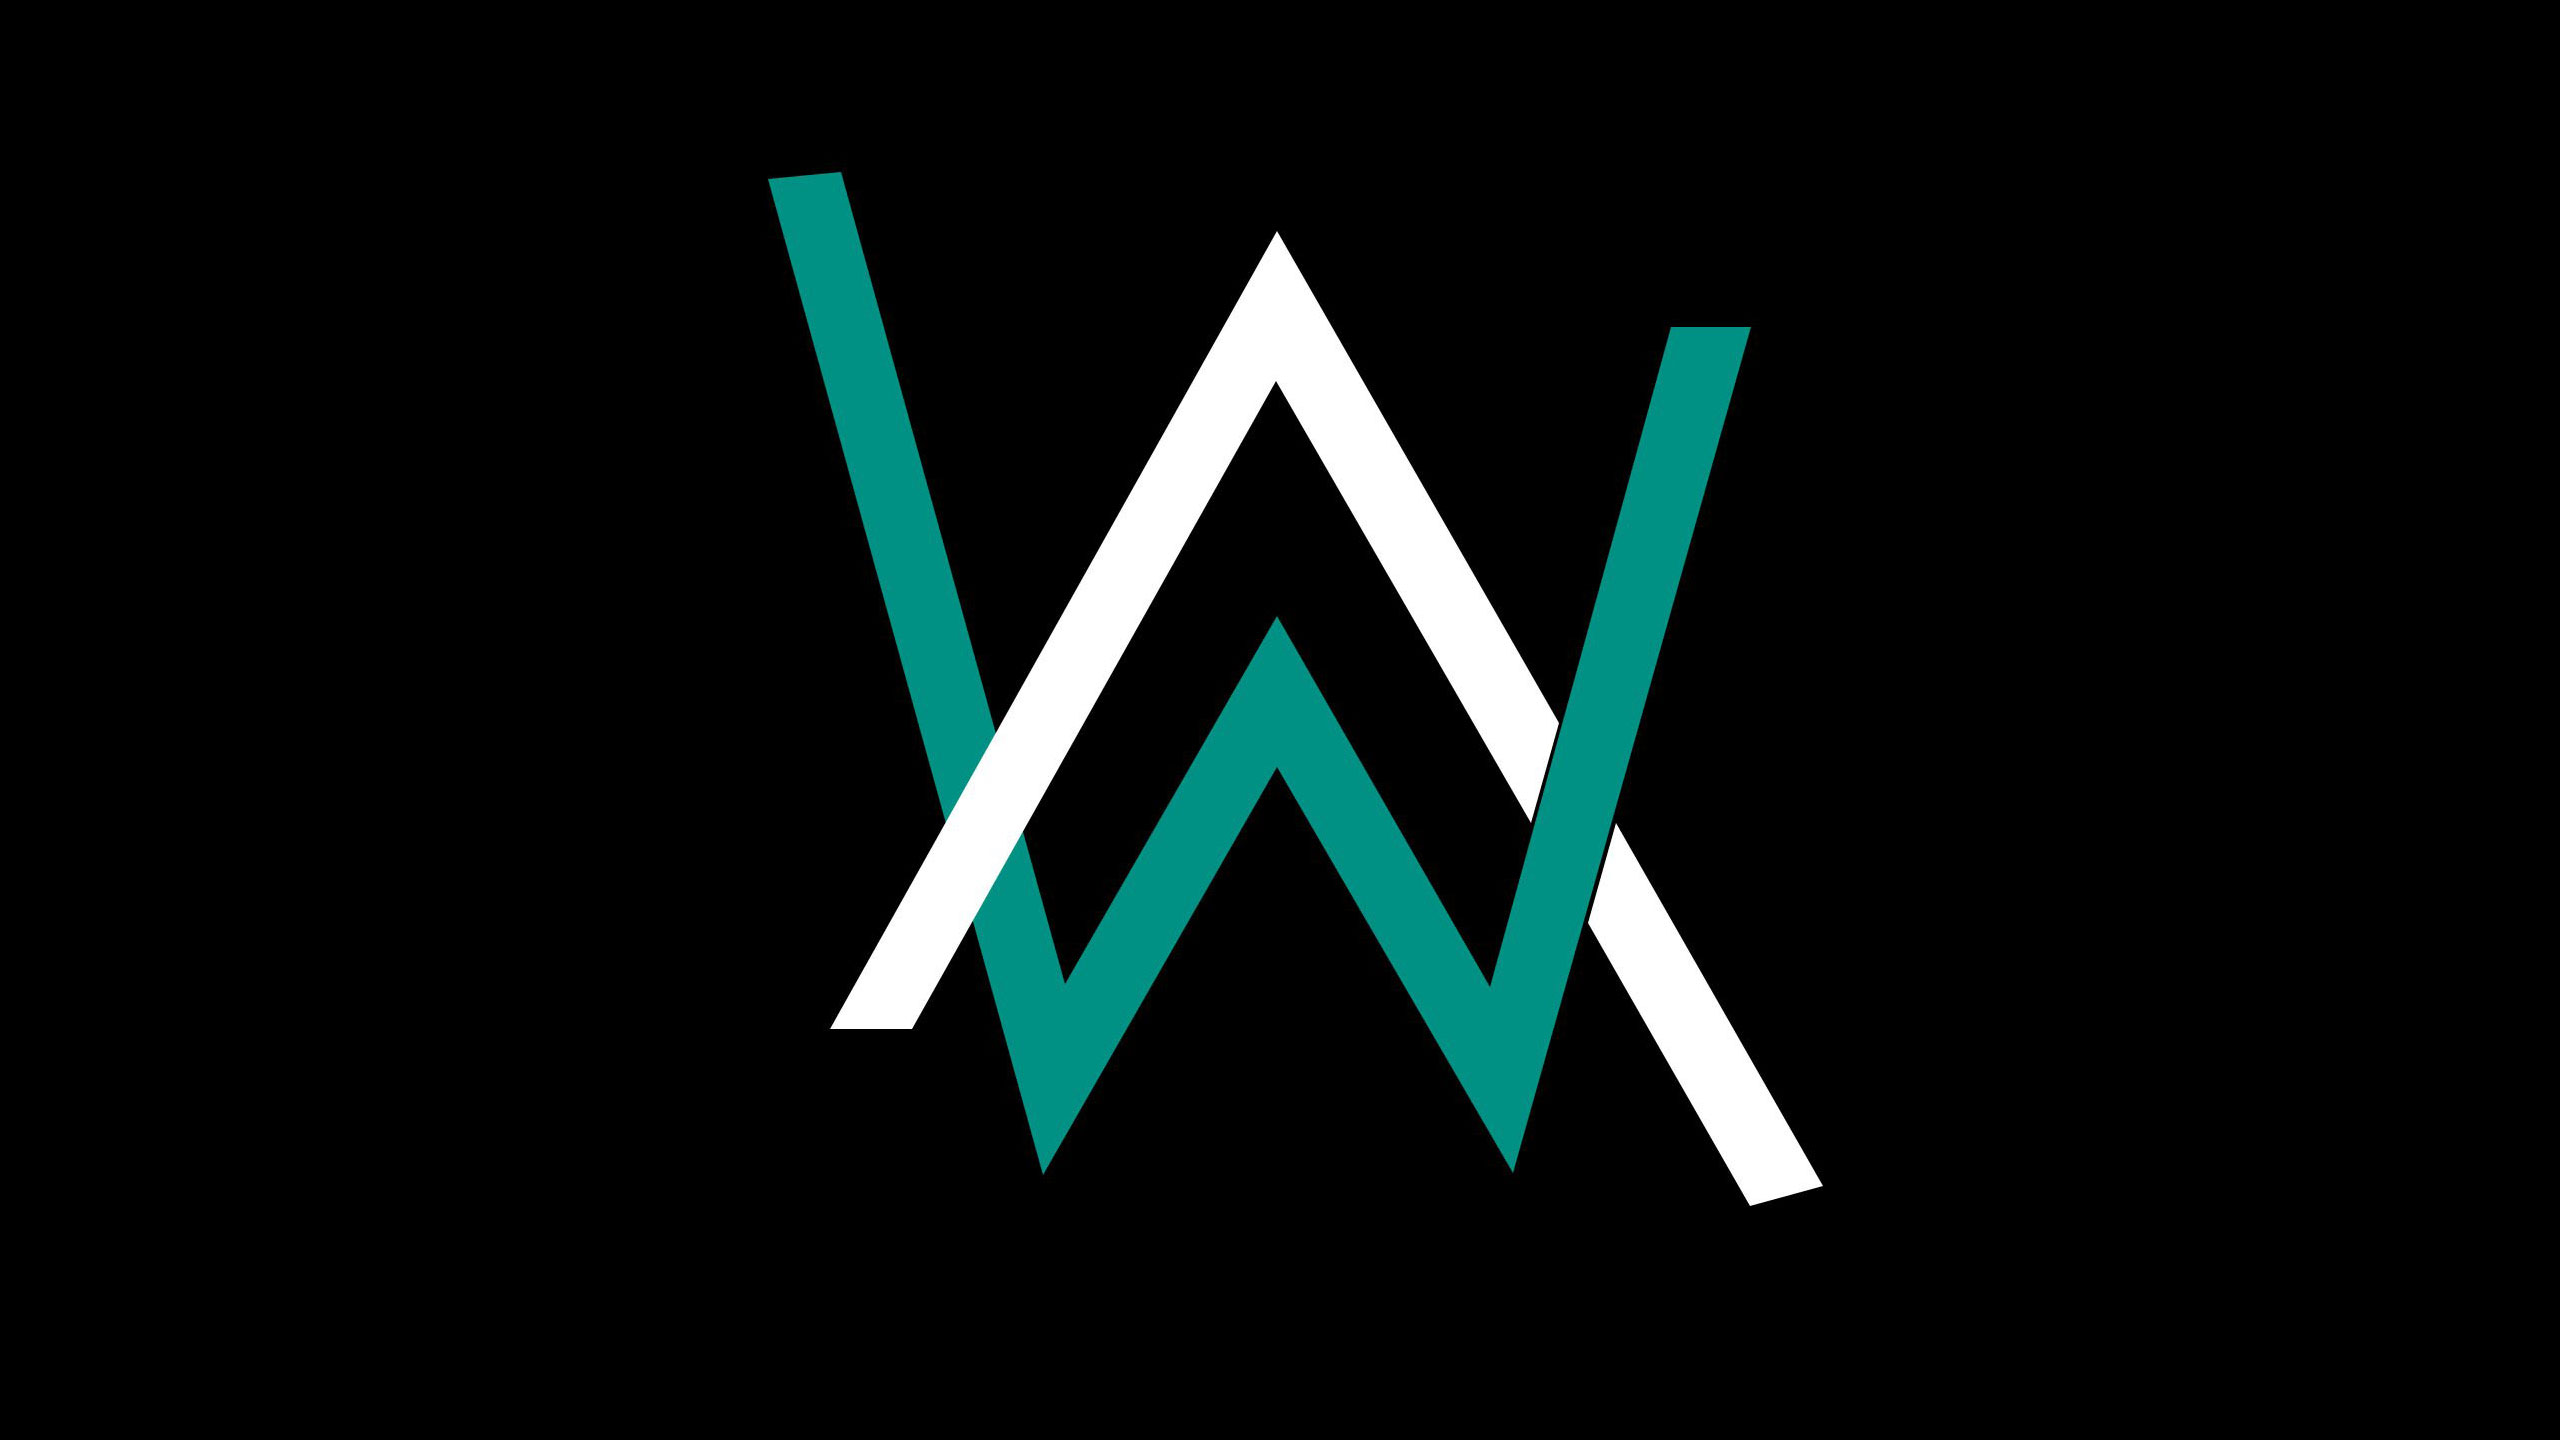 Alan Walker Logo Wallpaper